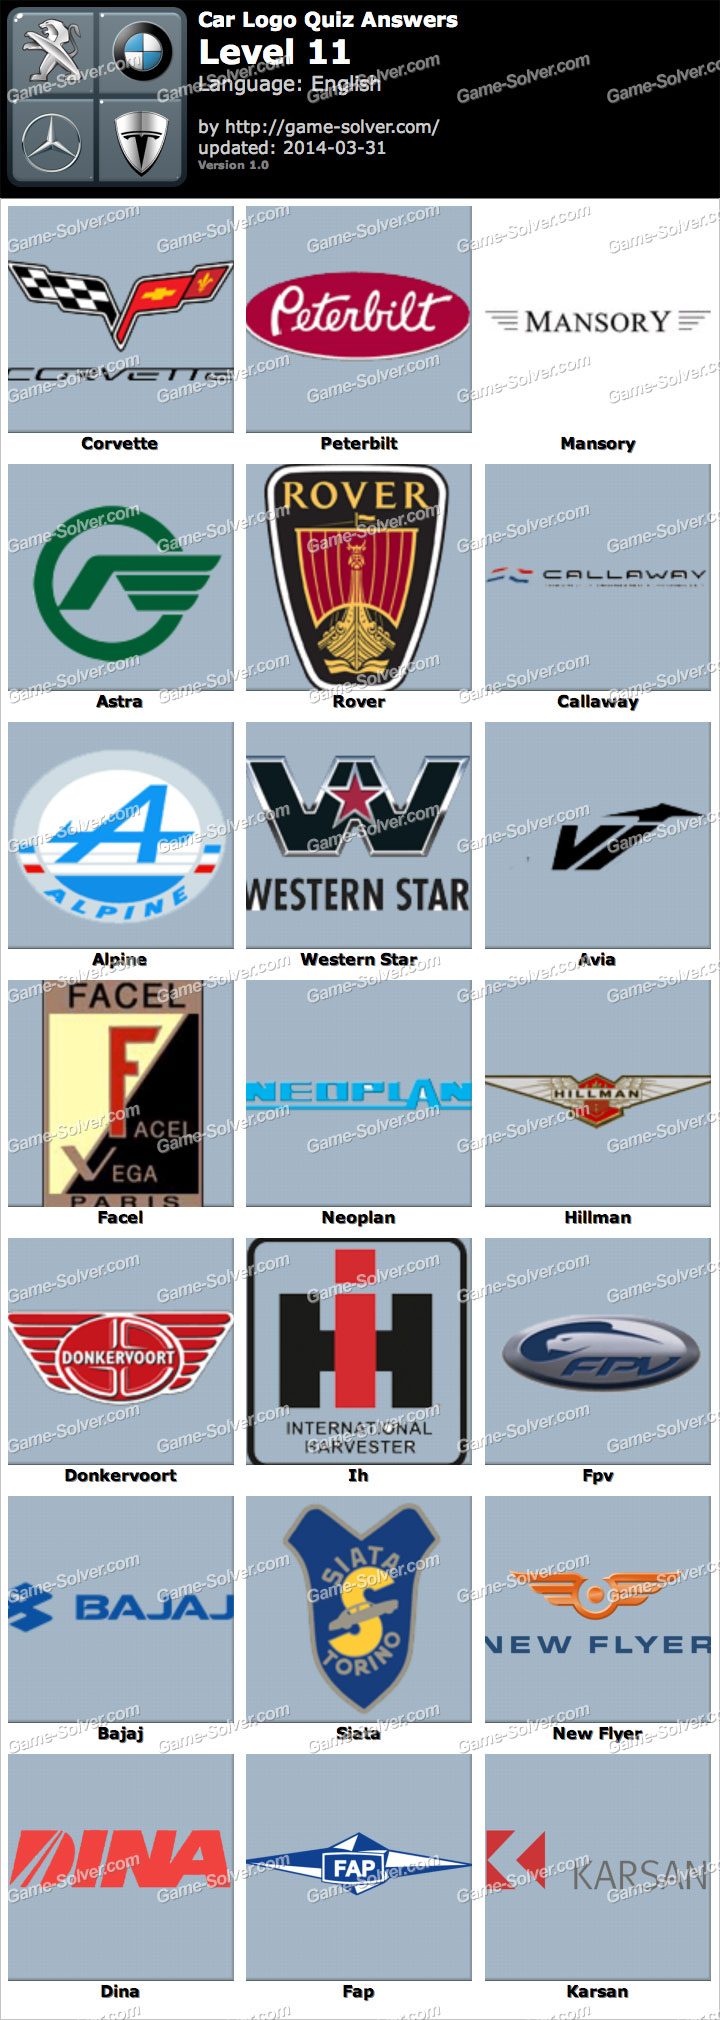 Car Logos Quiz Level 11 Car Logo Quiz Level 11